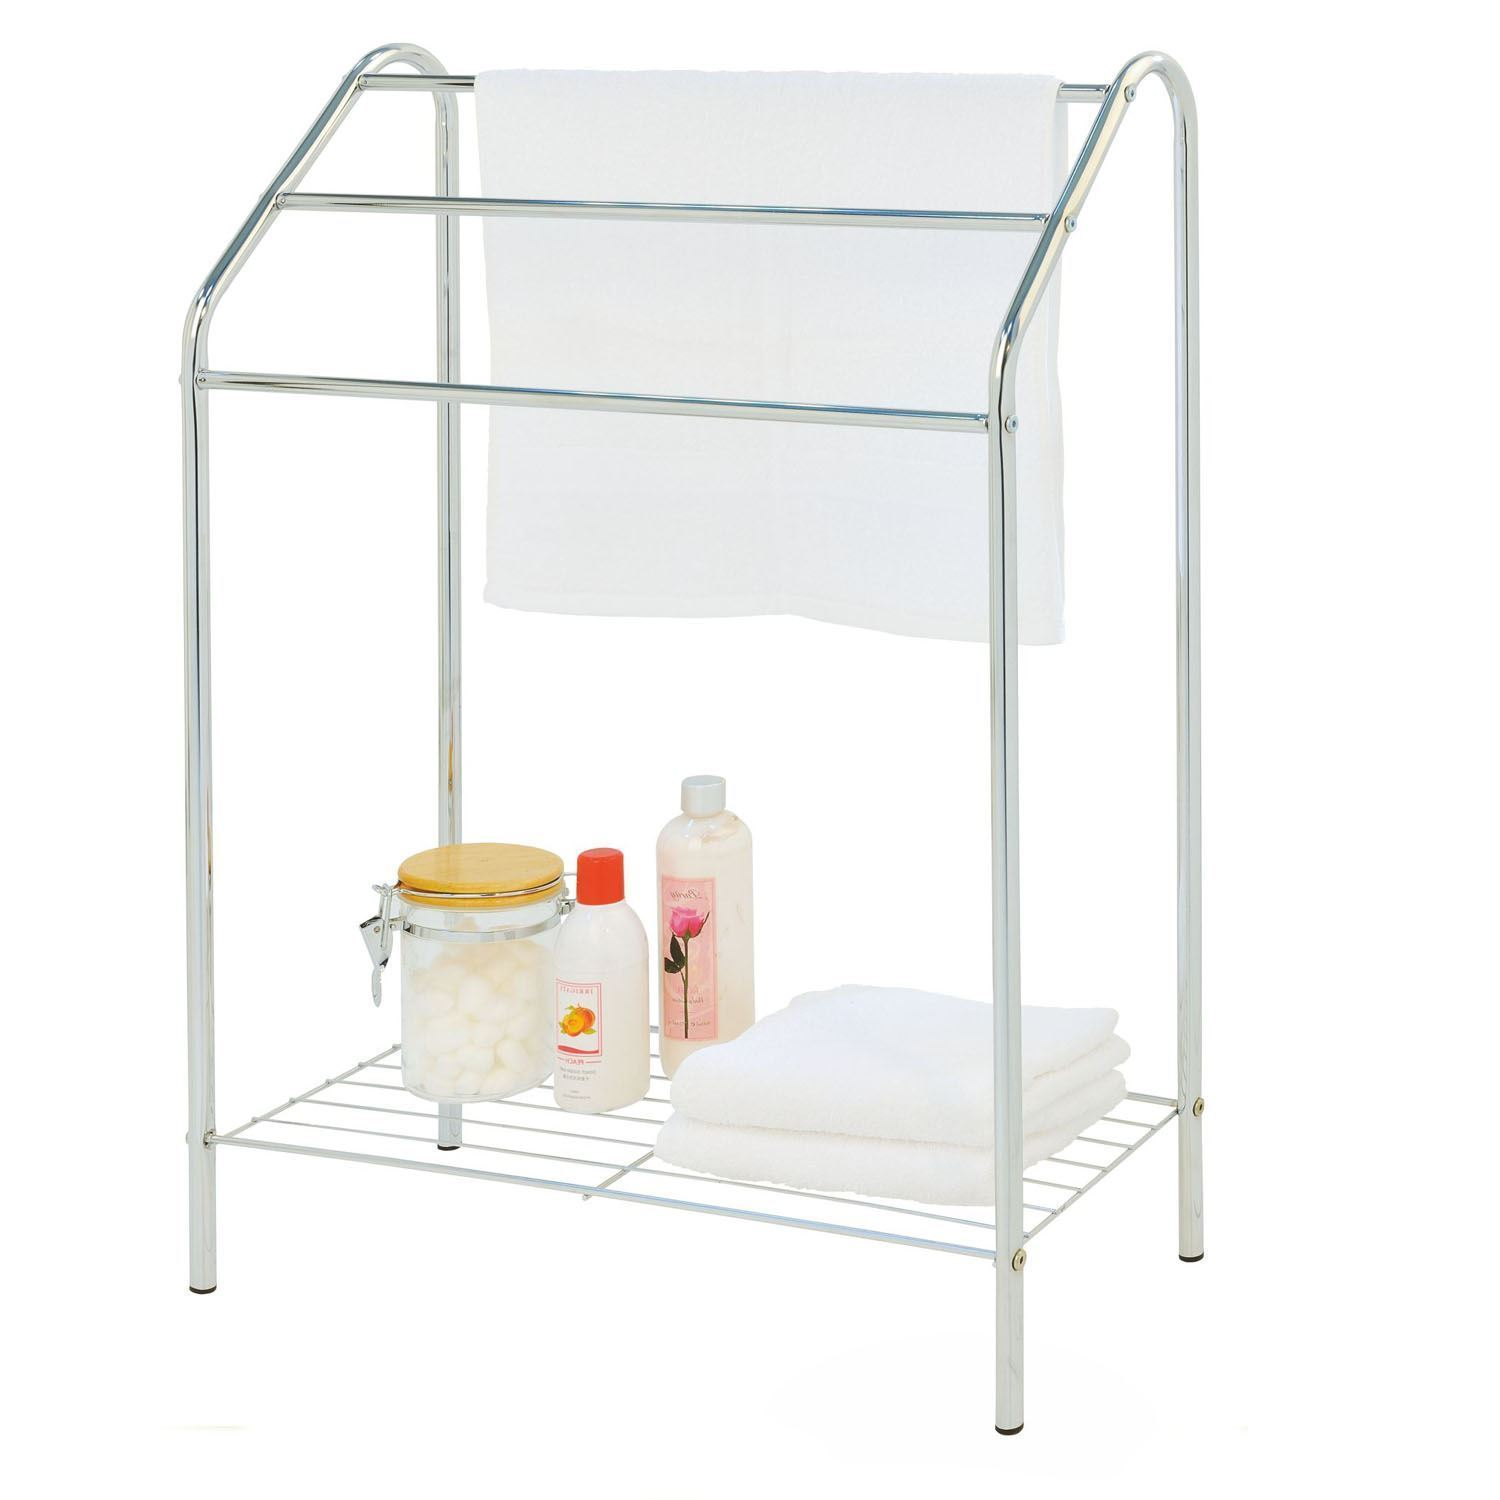 Modern chrome quality bathroom shelf towel stand rack for Bathroom towel racks